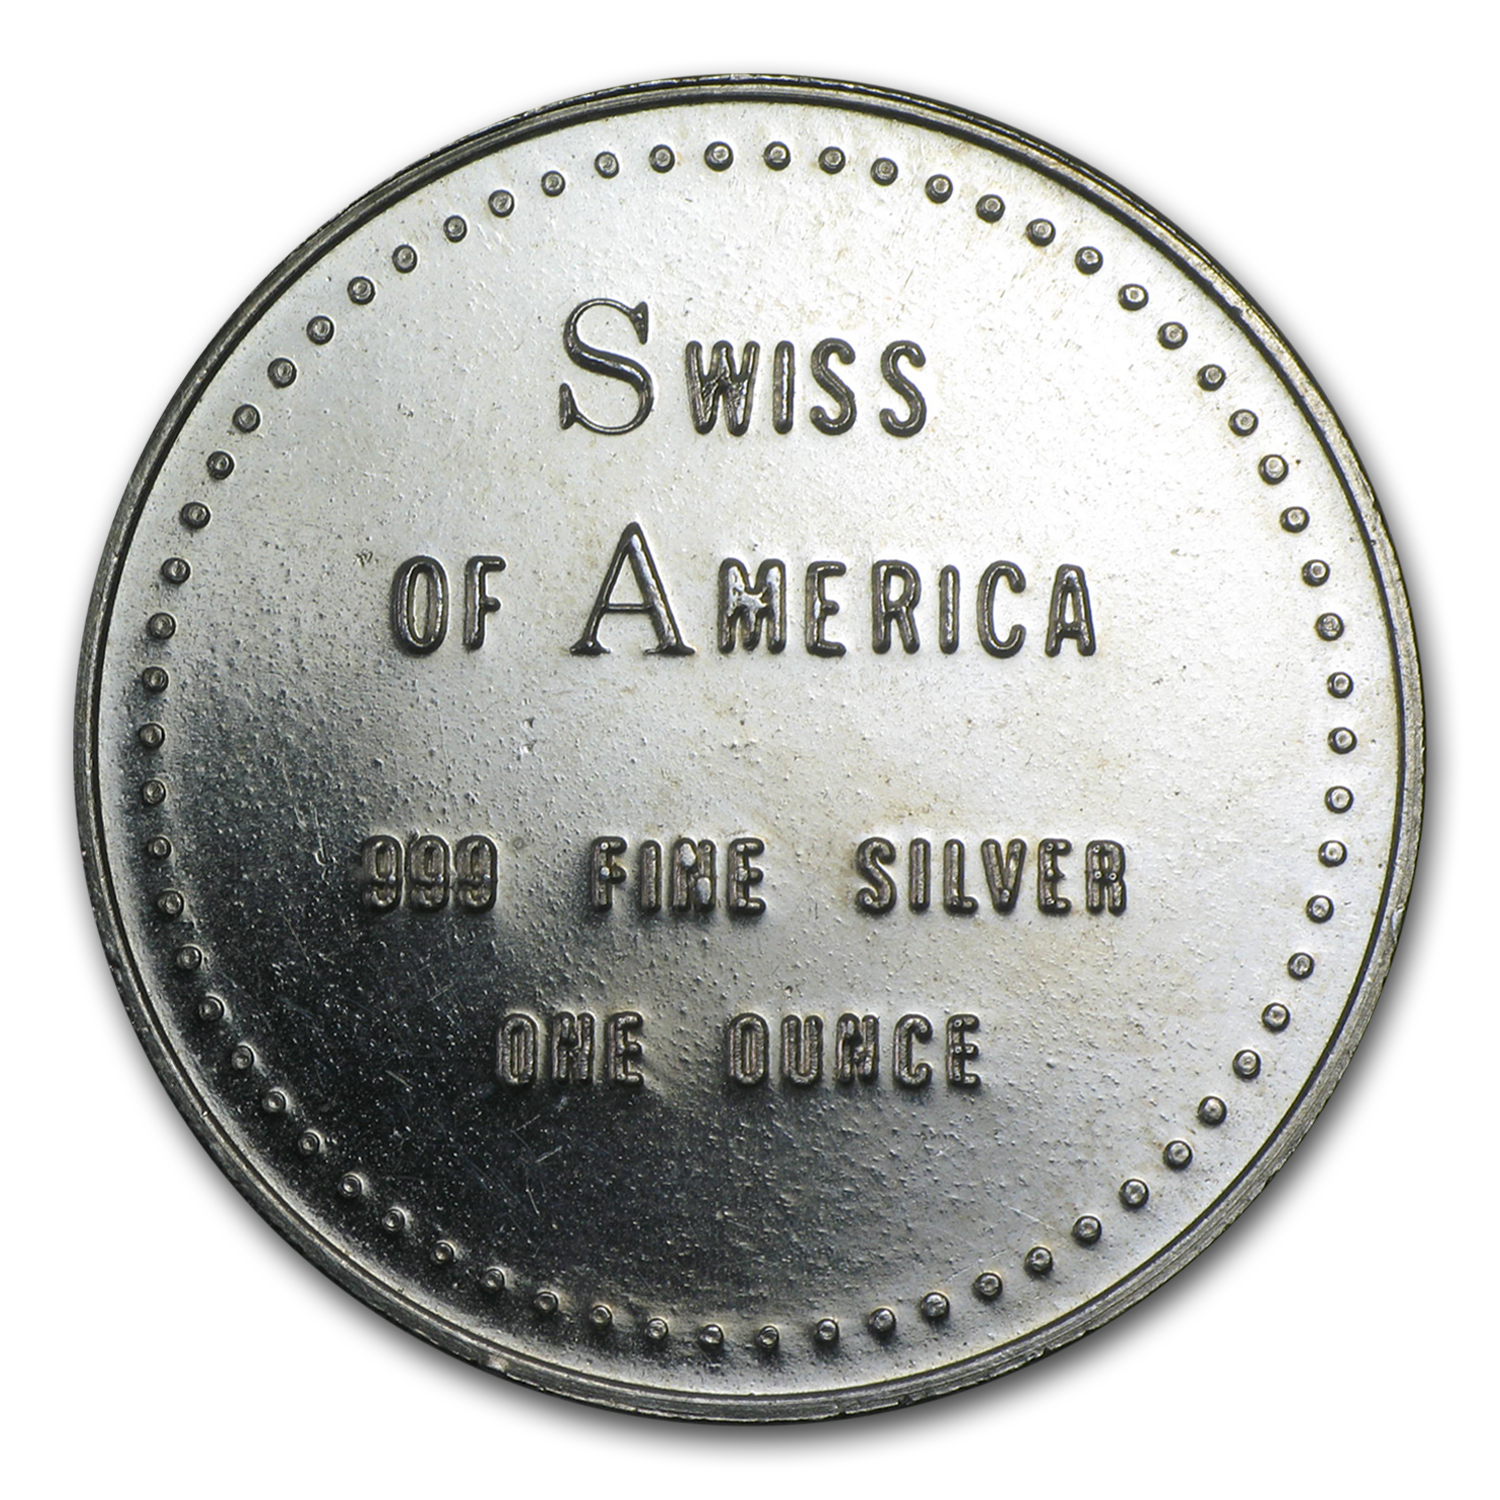 1 oz Silver Rounds - Swiss of America (38 mm)